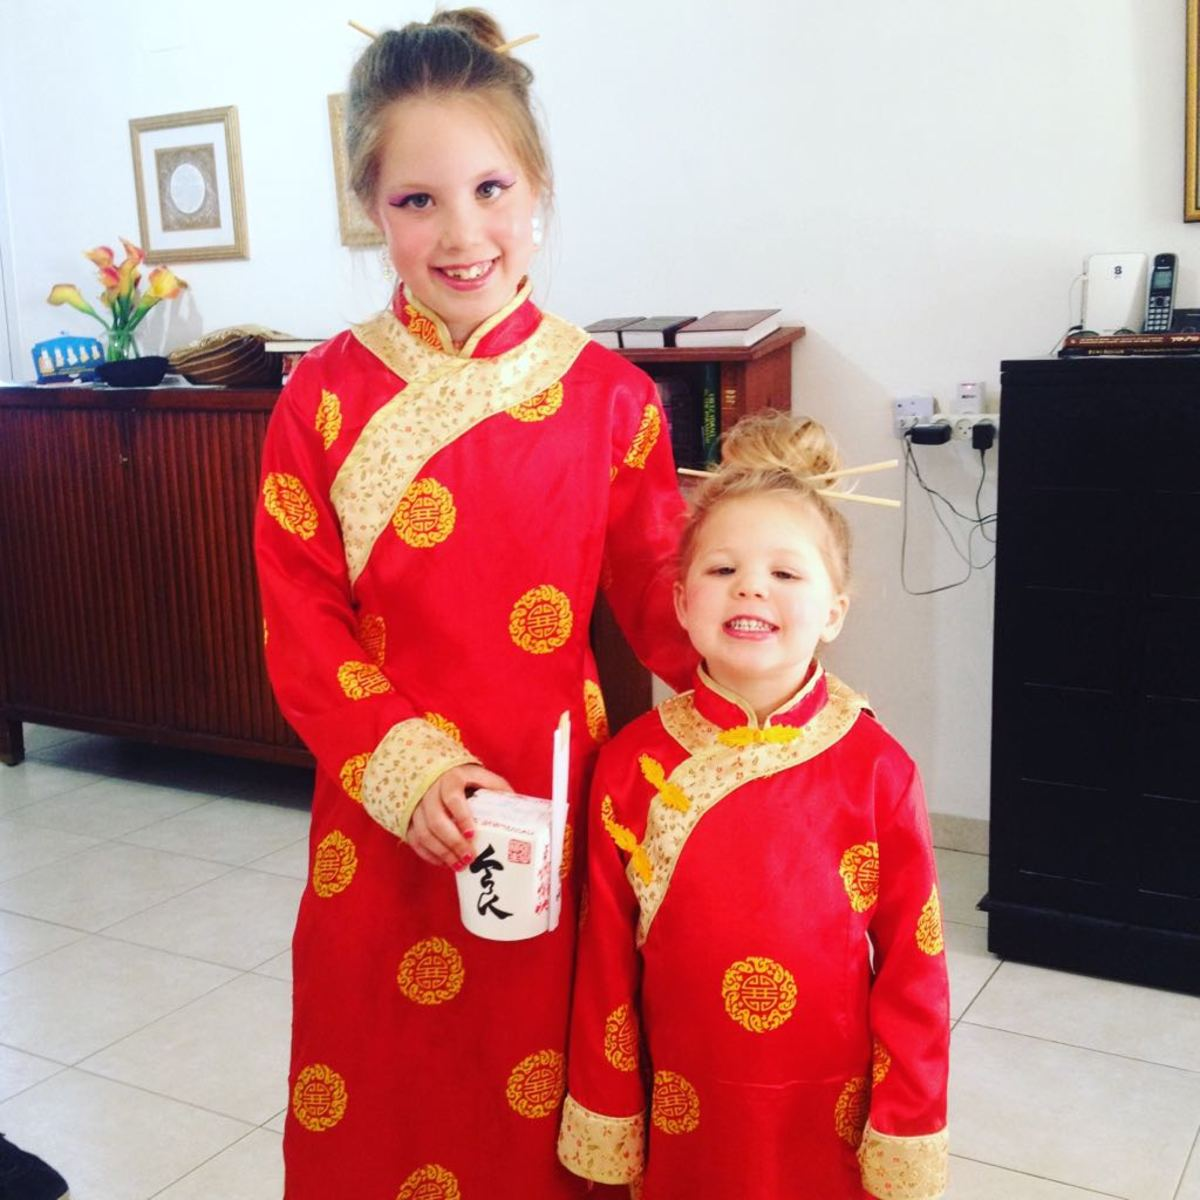 GIRLS IN ASIAN COSTUME